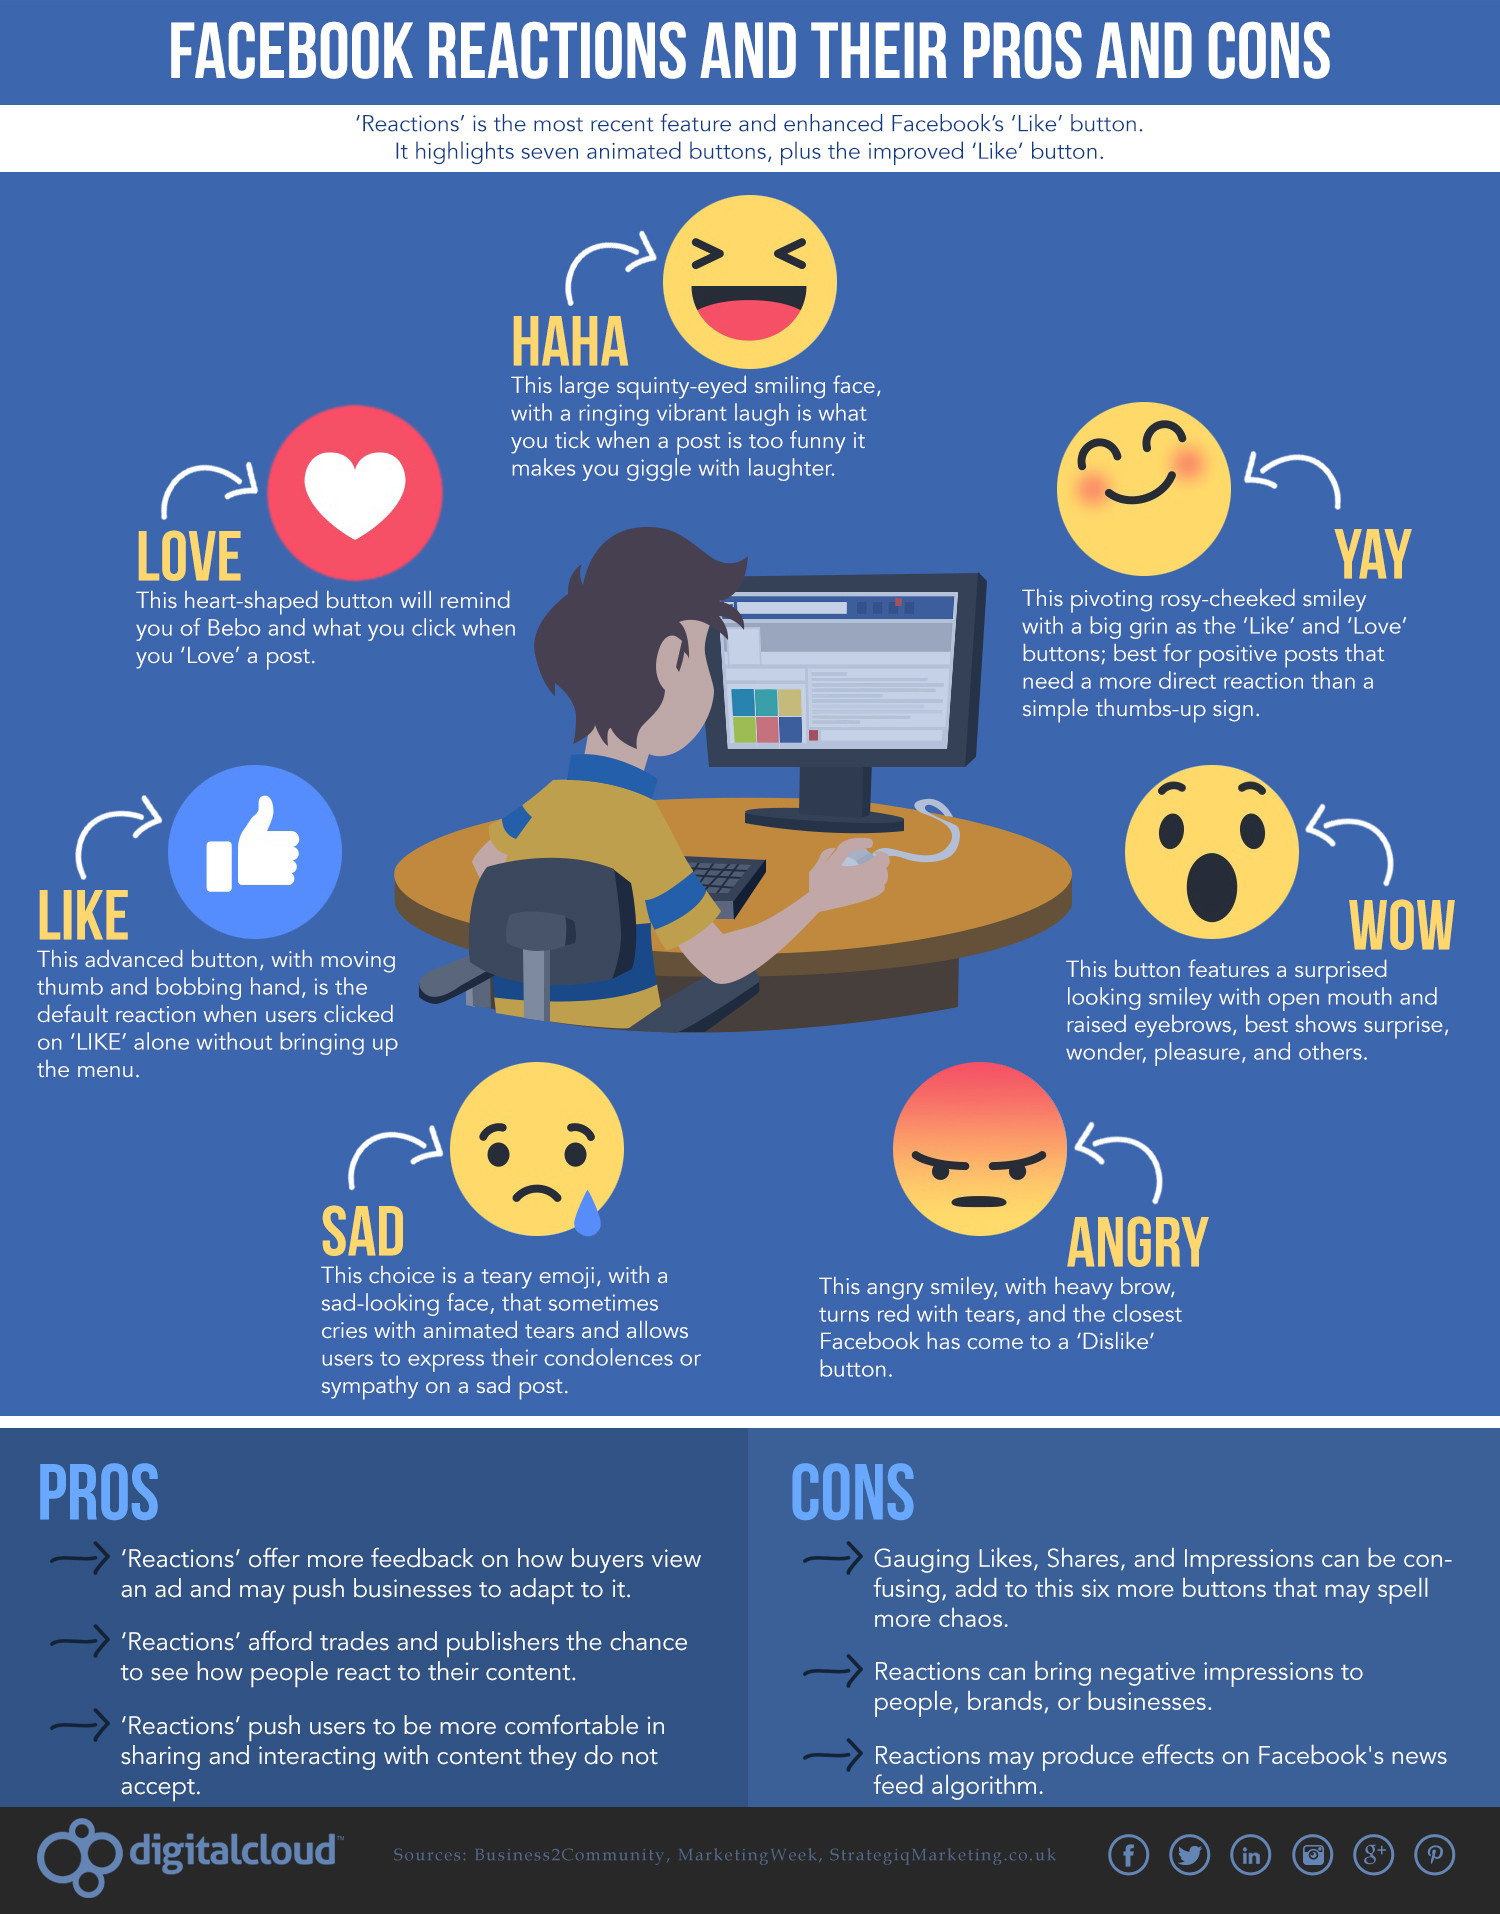 Facebook Reactions and Their Pros and Cons Infographic